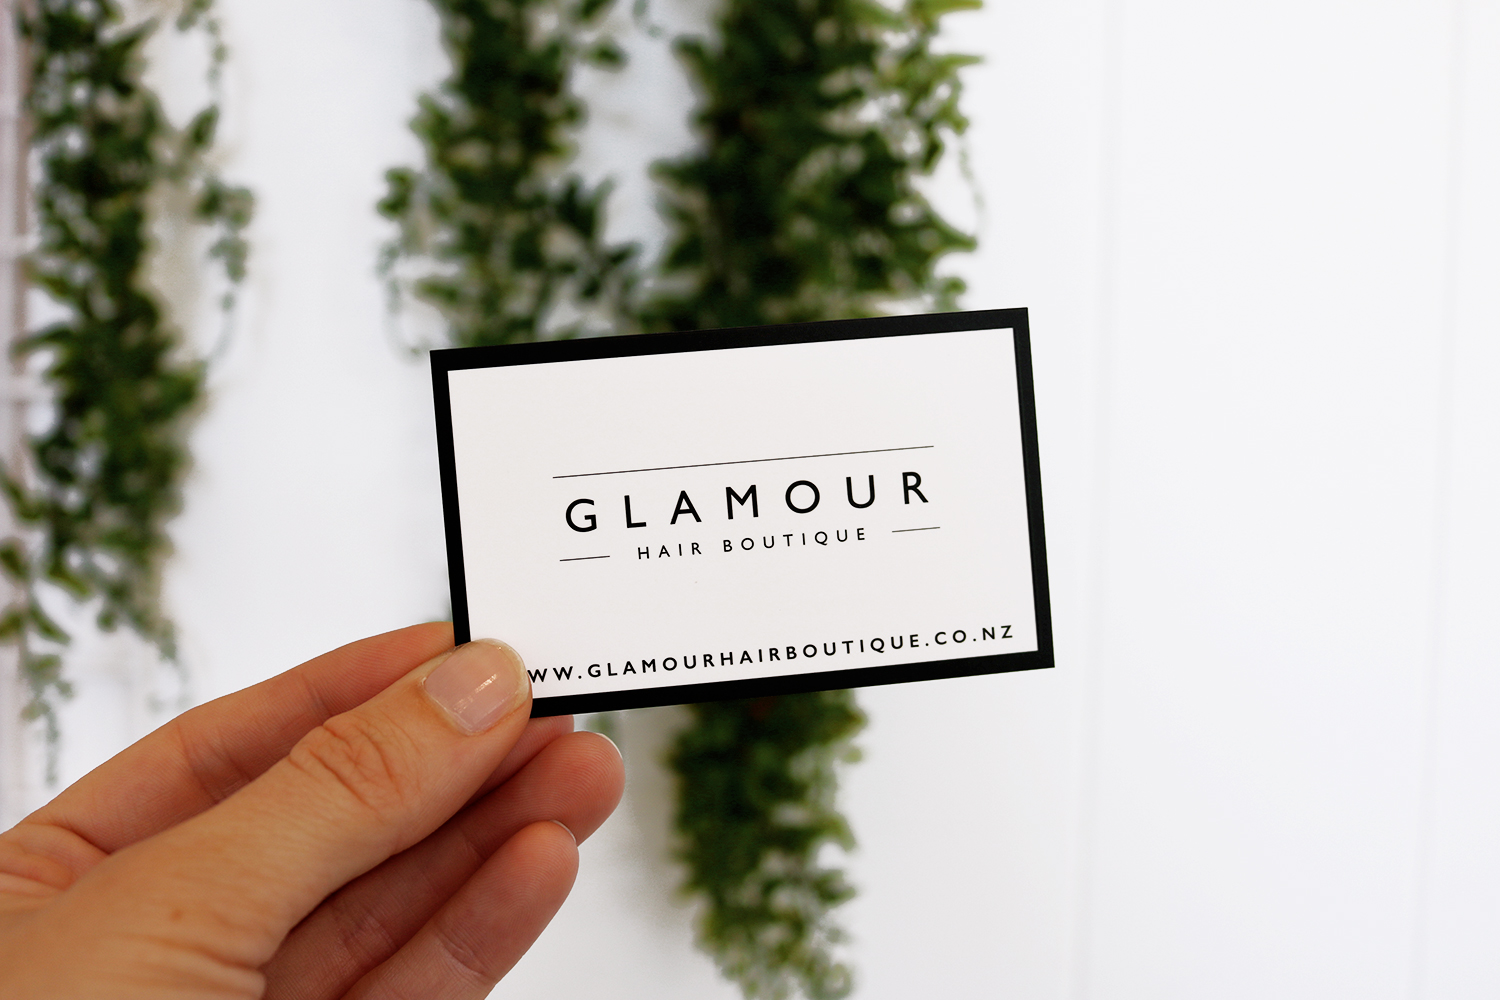 Glamour Hair Boutique Business Card Front